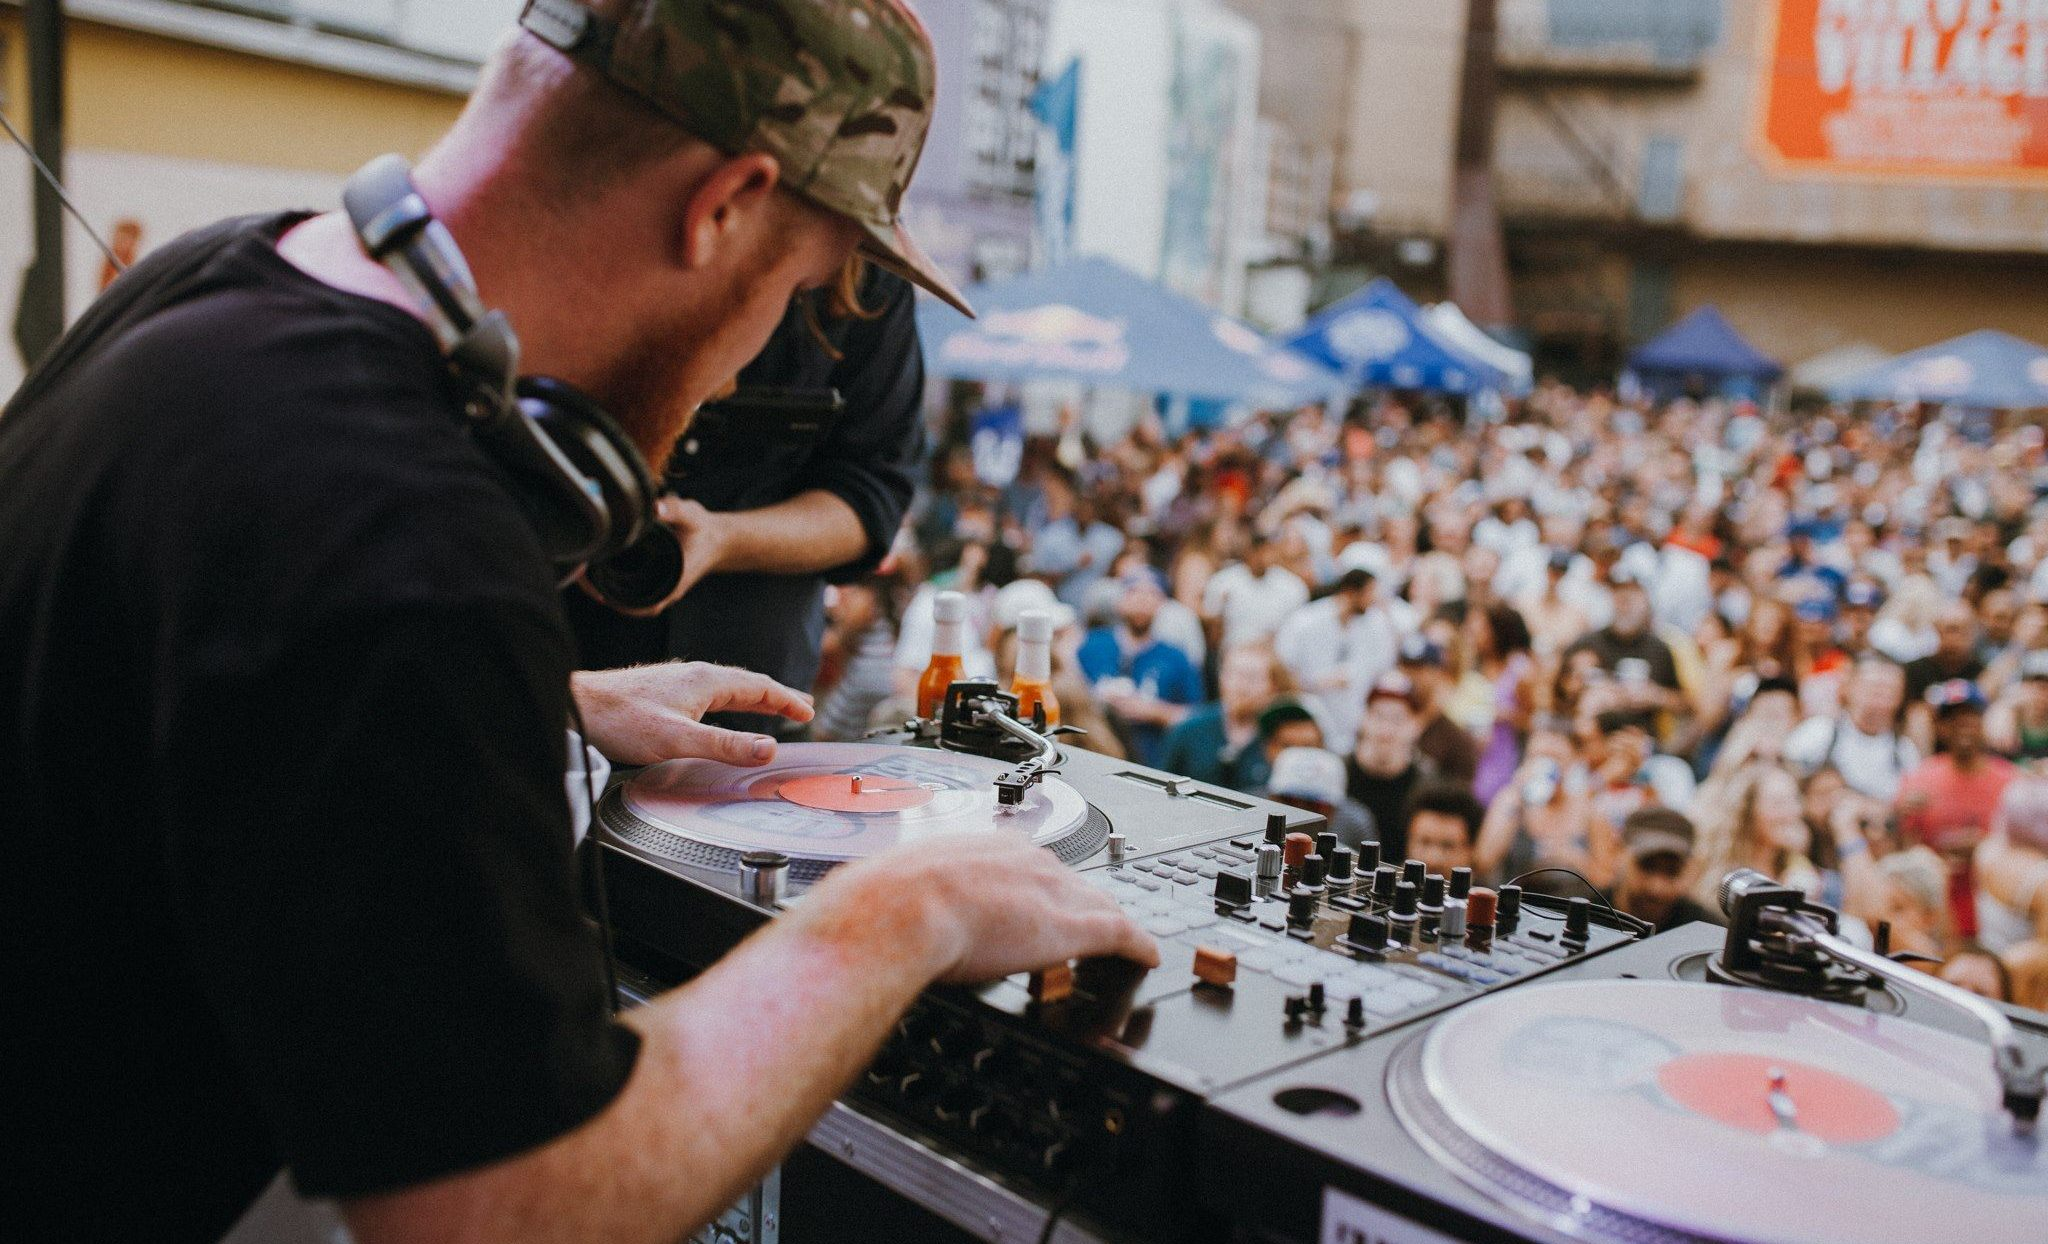 Skratch Bastid is bringing Bastid's BBQ back to Vancouver